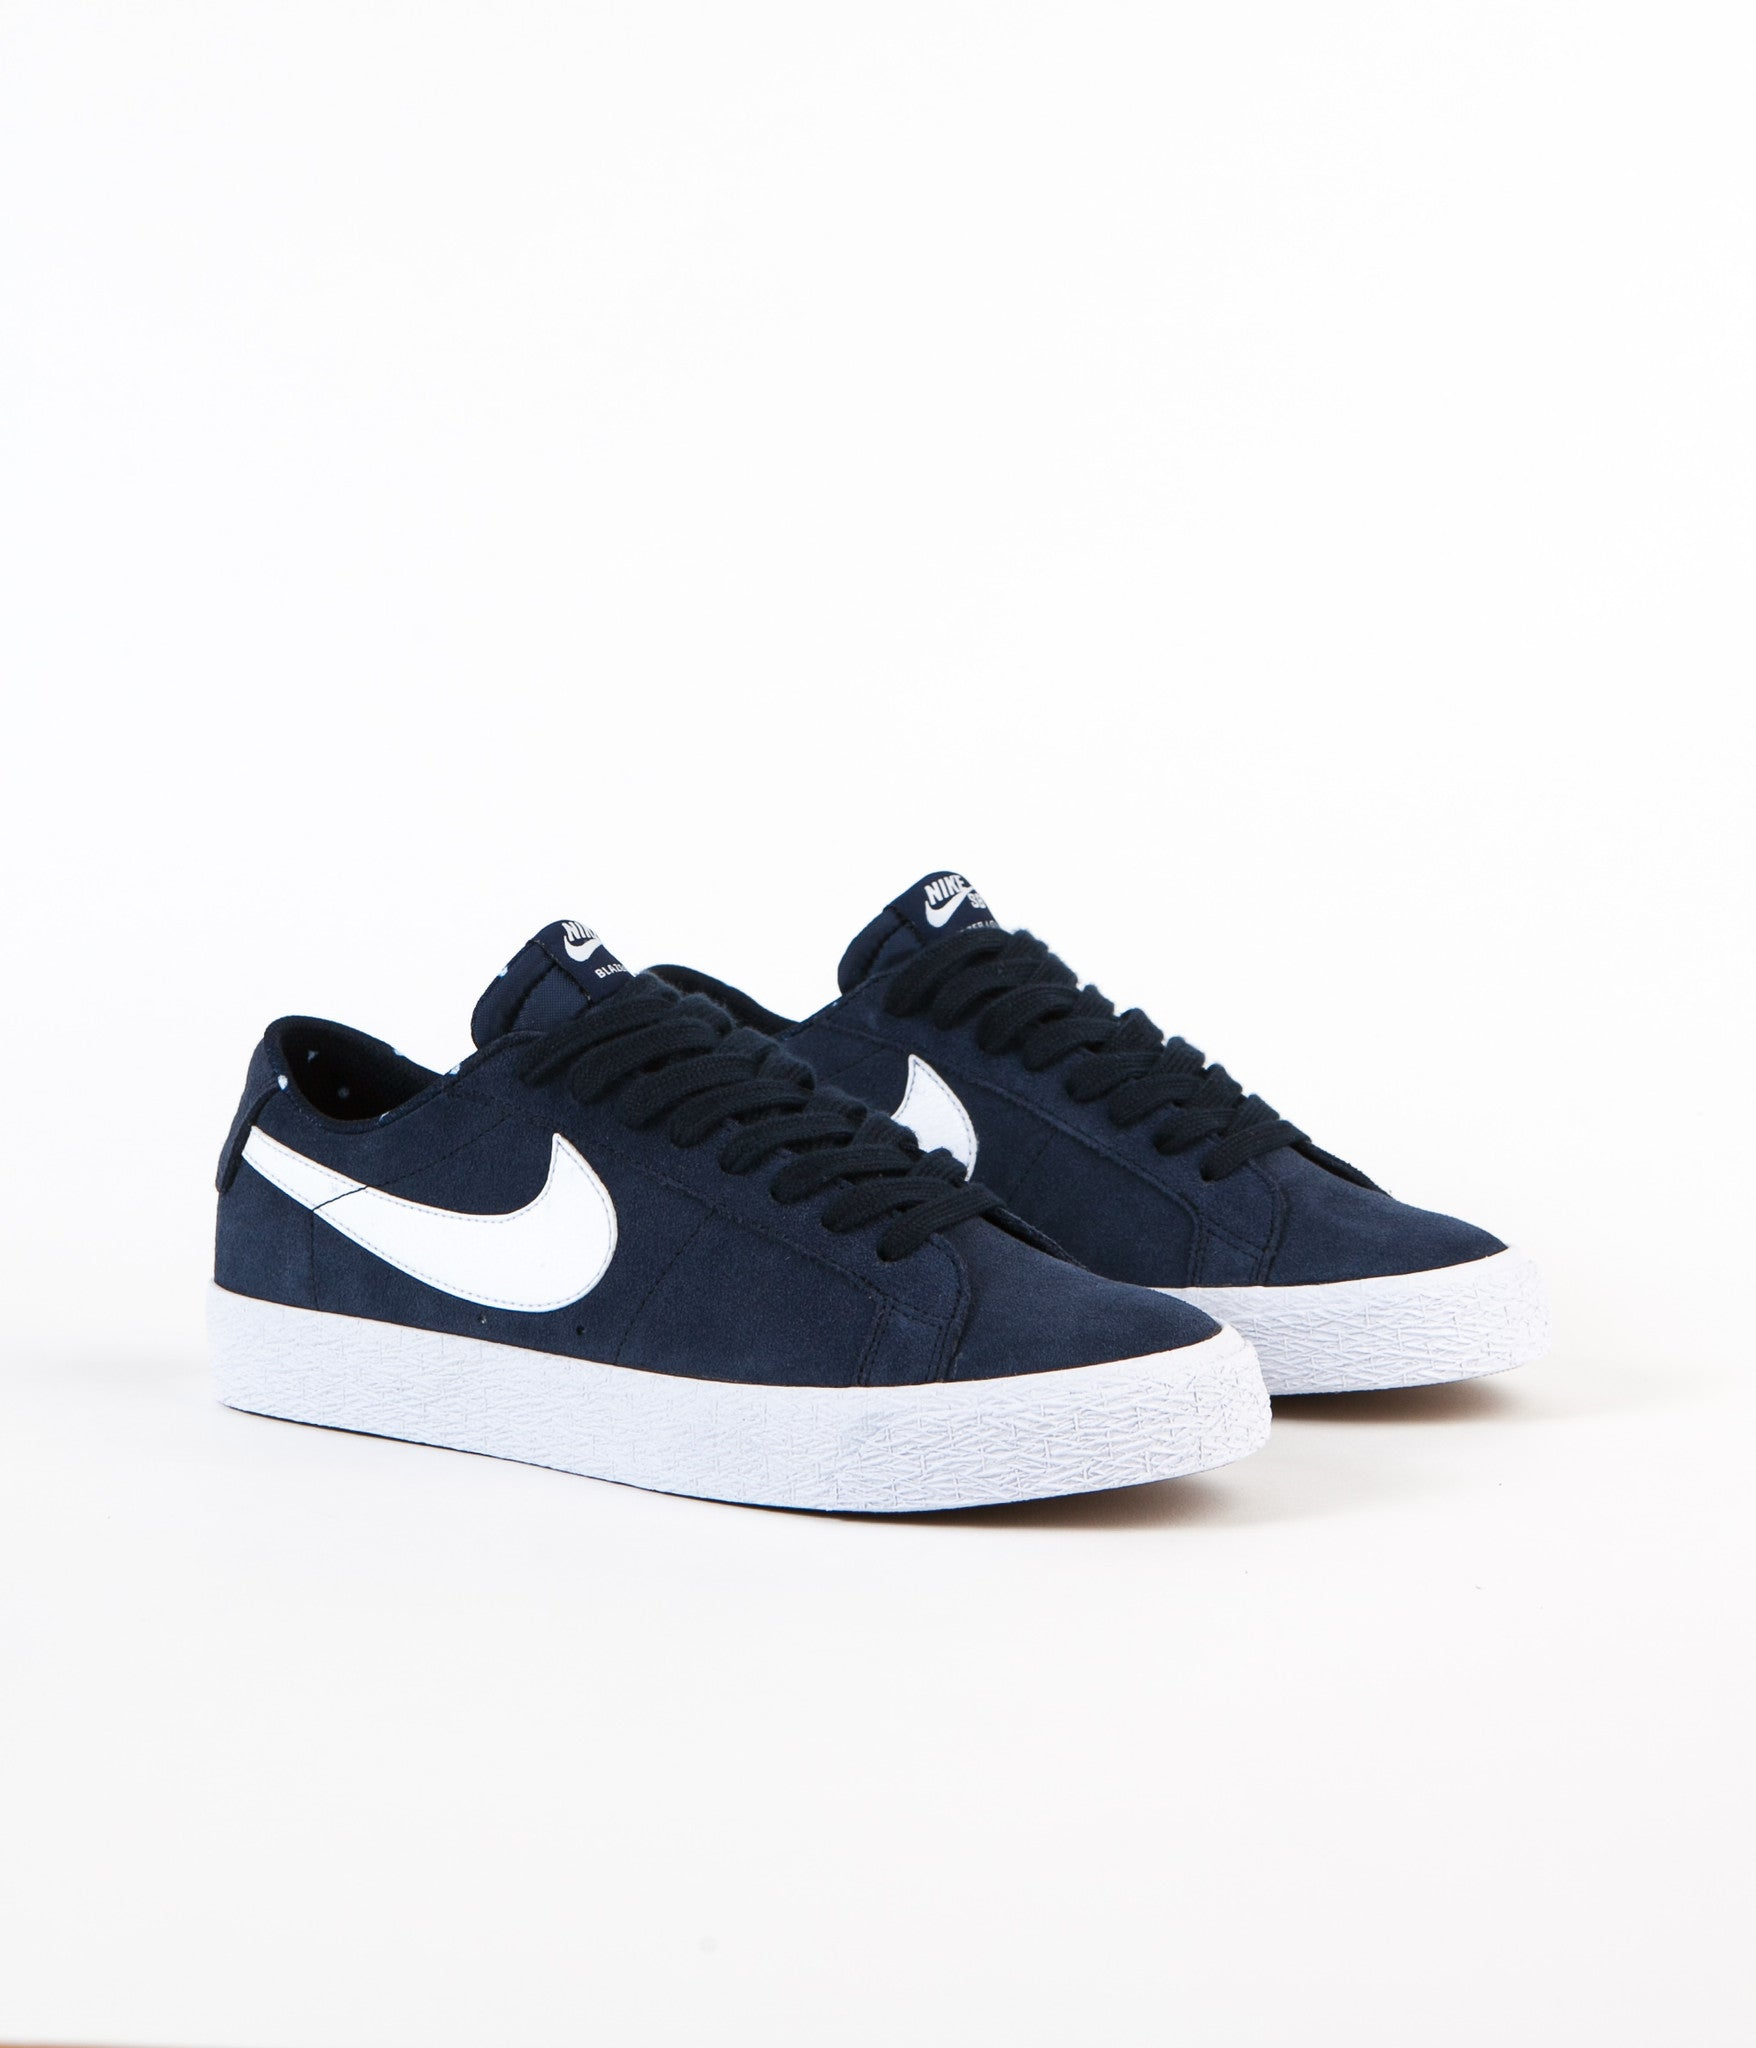 nike blazer cheap uk holidays